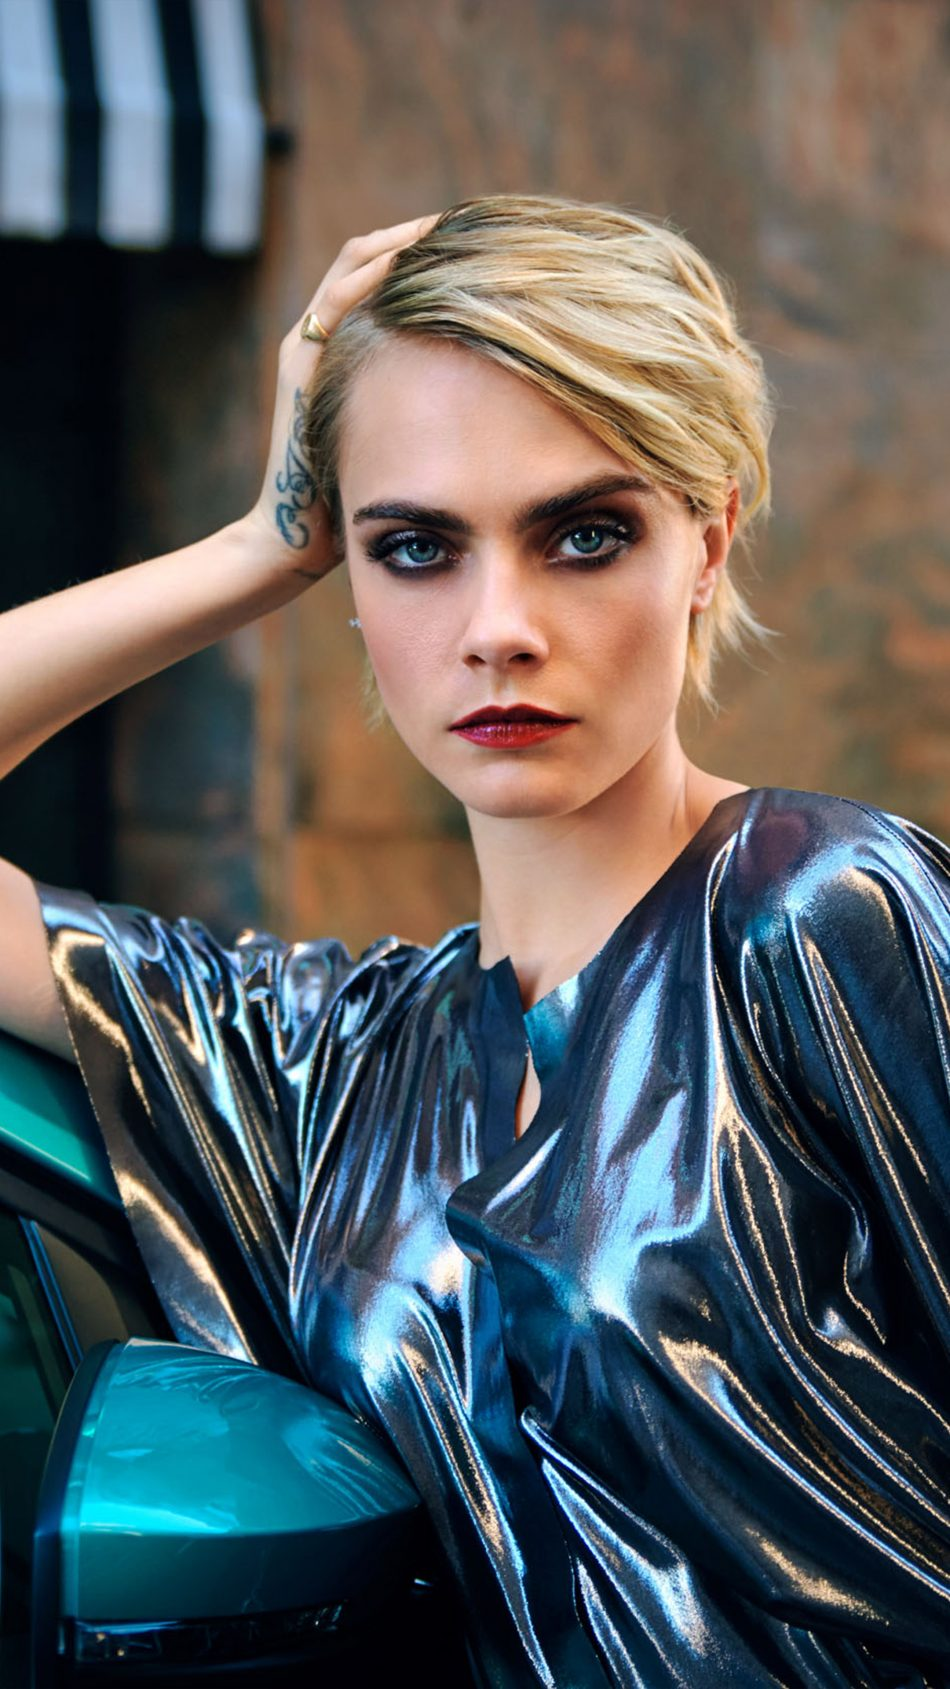 Cara Delevingne Photoshoot 2019 4K Ultra HD Mobile Wallpaper